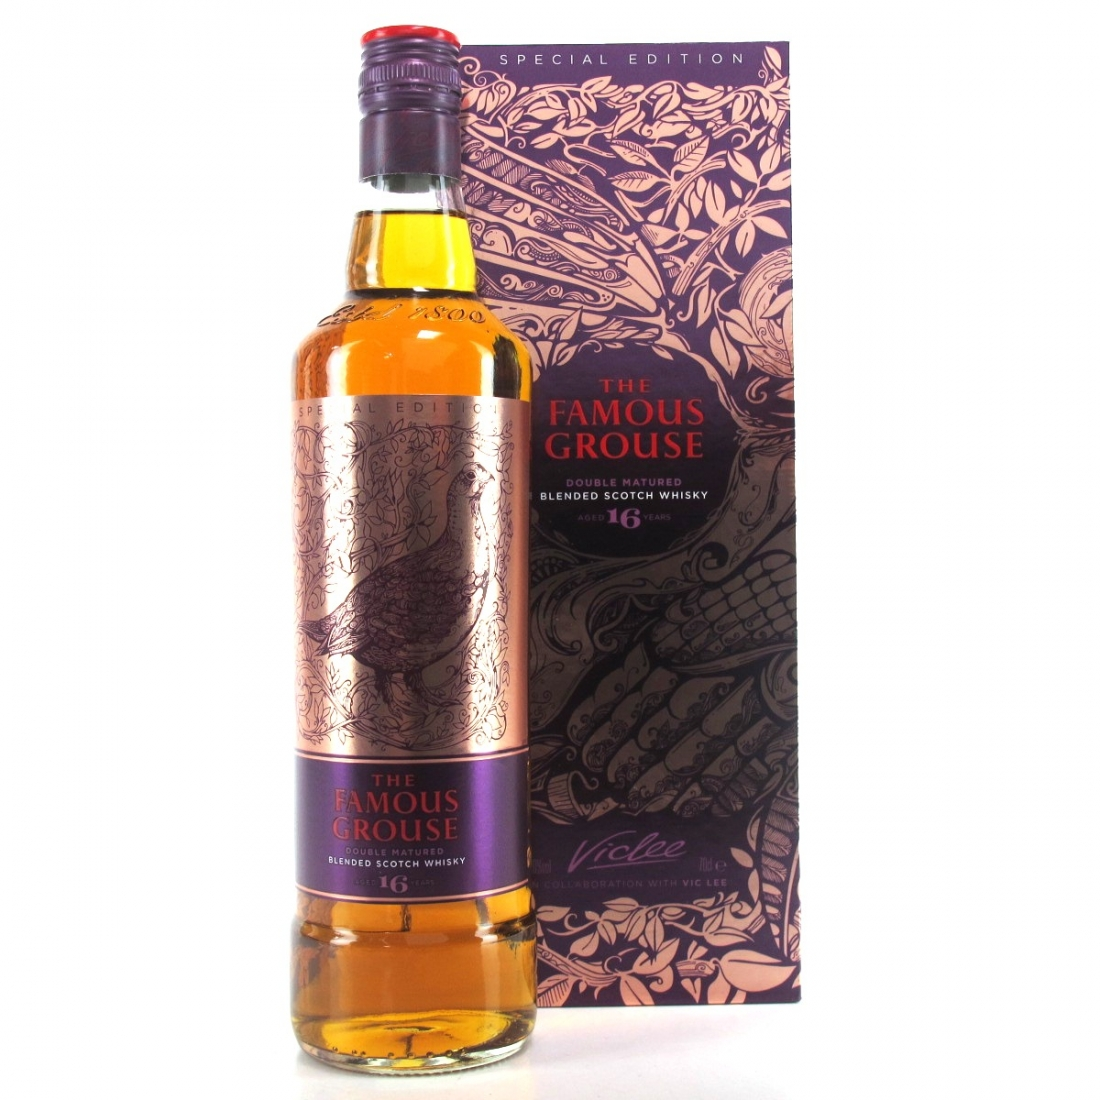 Famous Grouse 16 Year Old Double Matured Blend